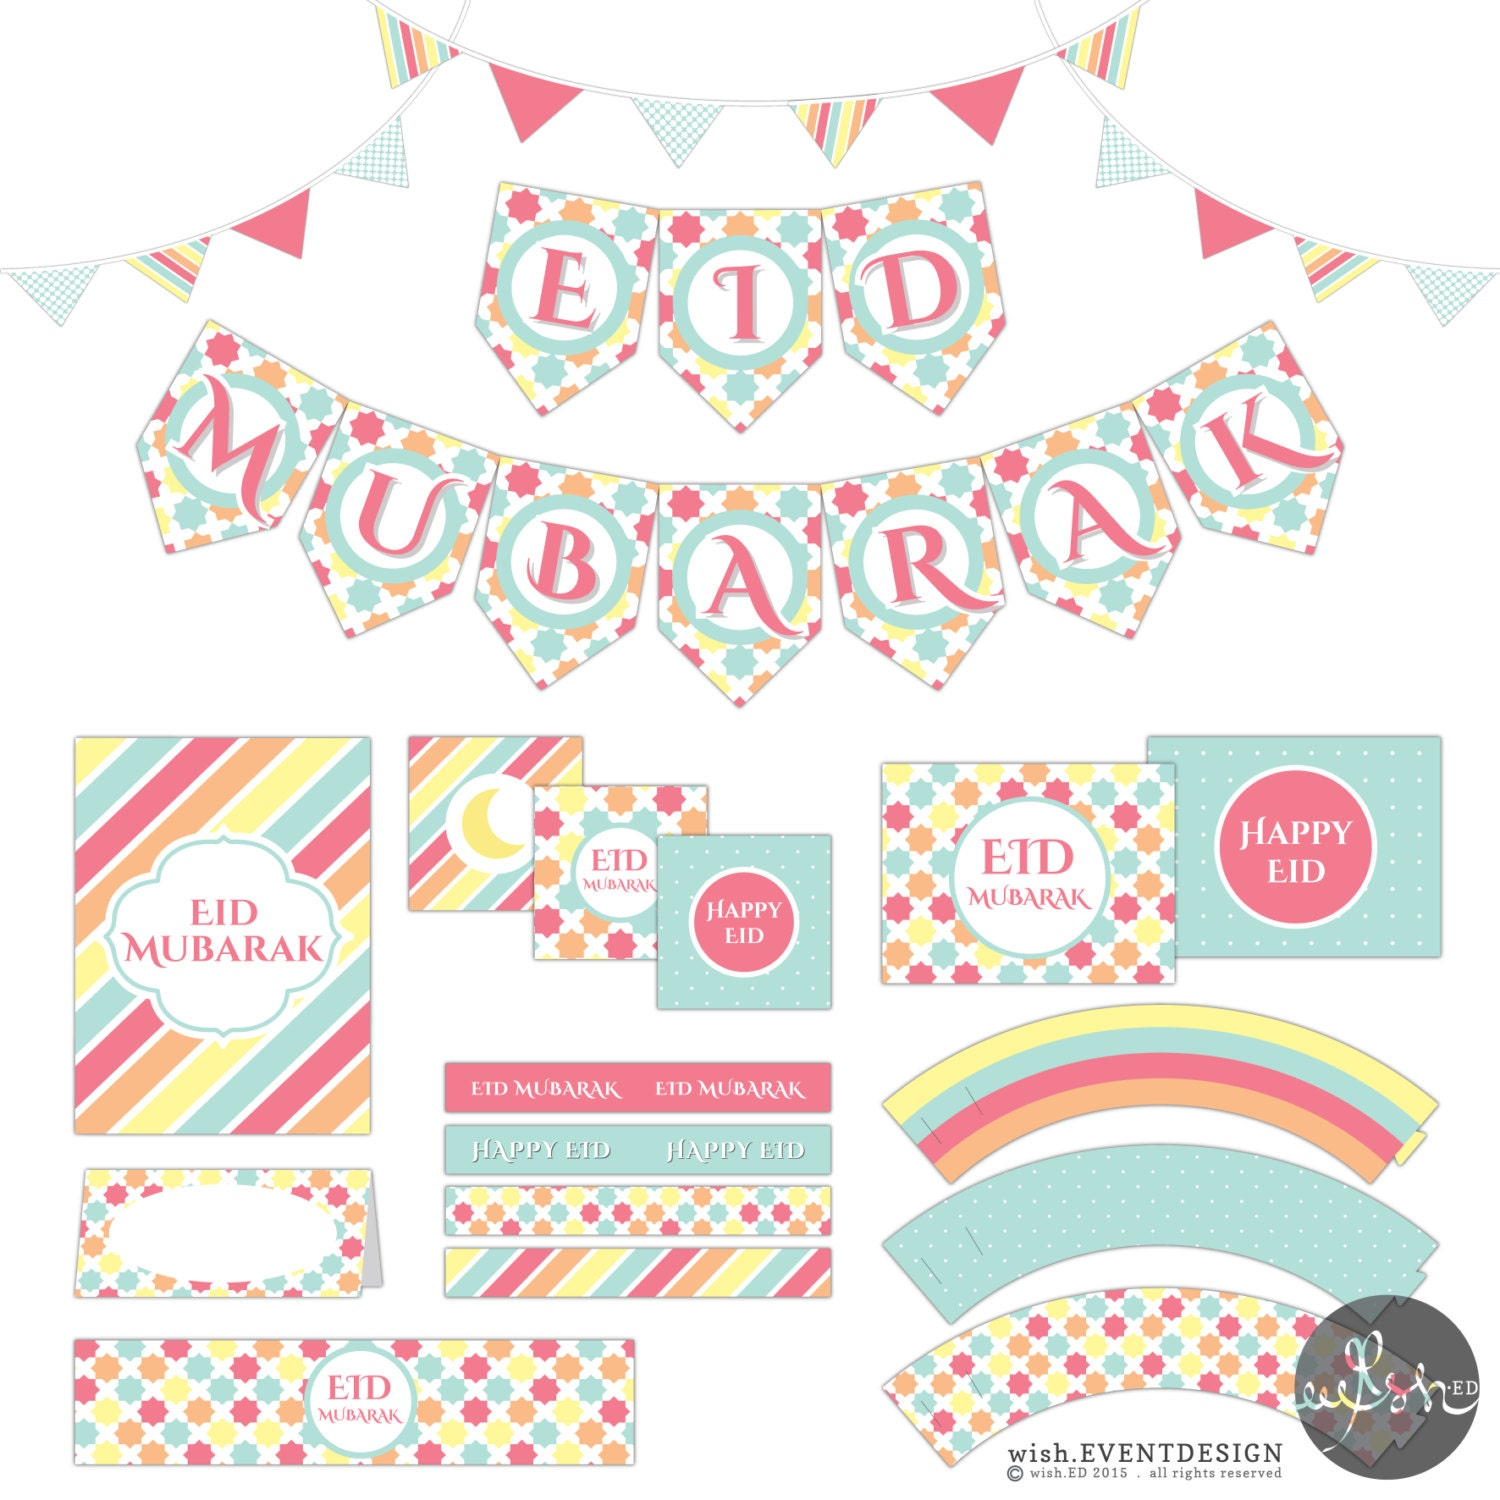 photo about Eid Cards Printable named Eid Printables standing